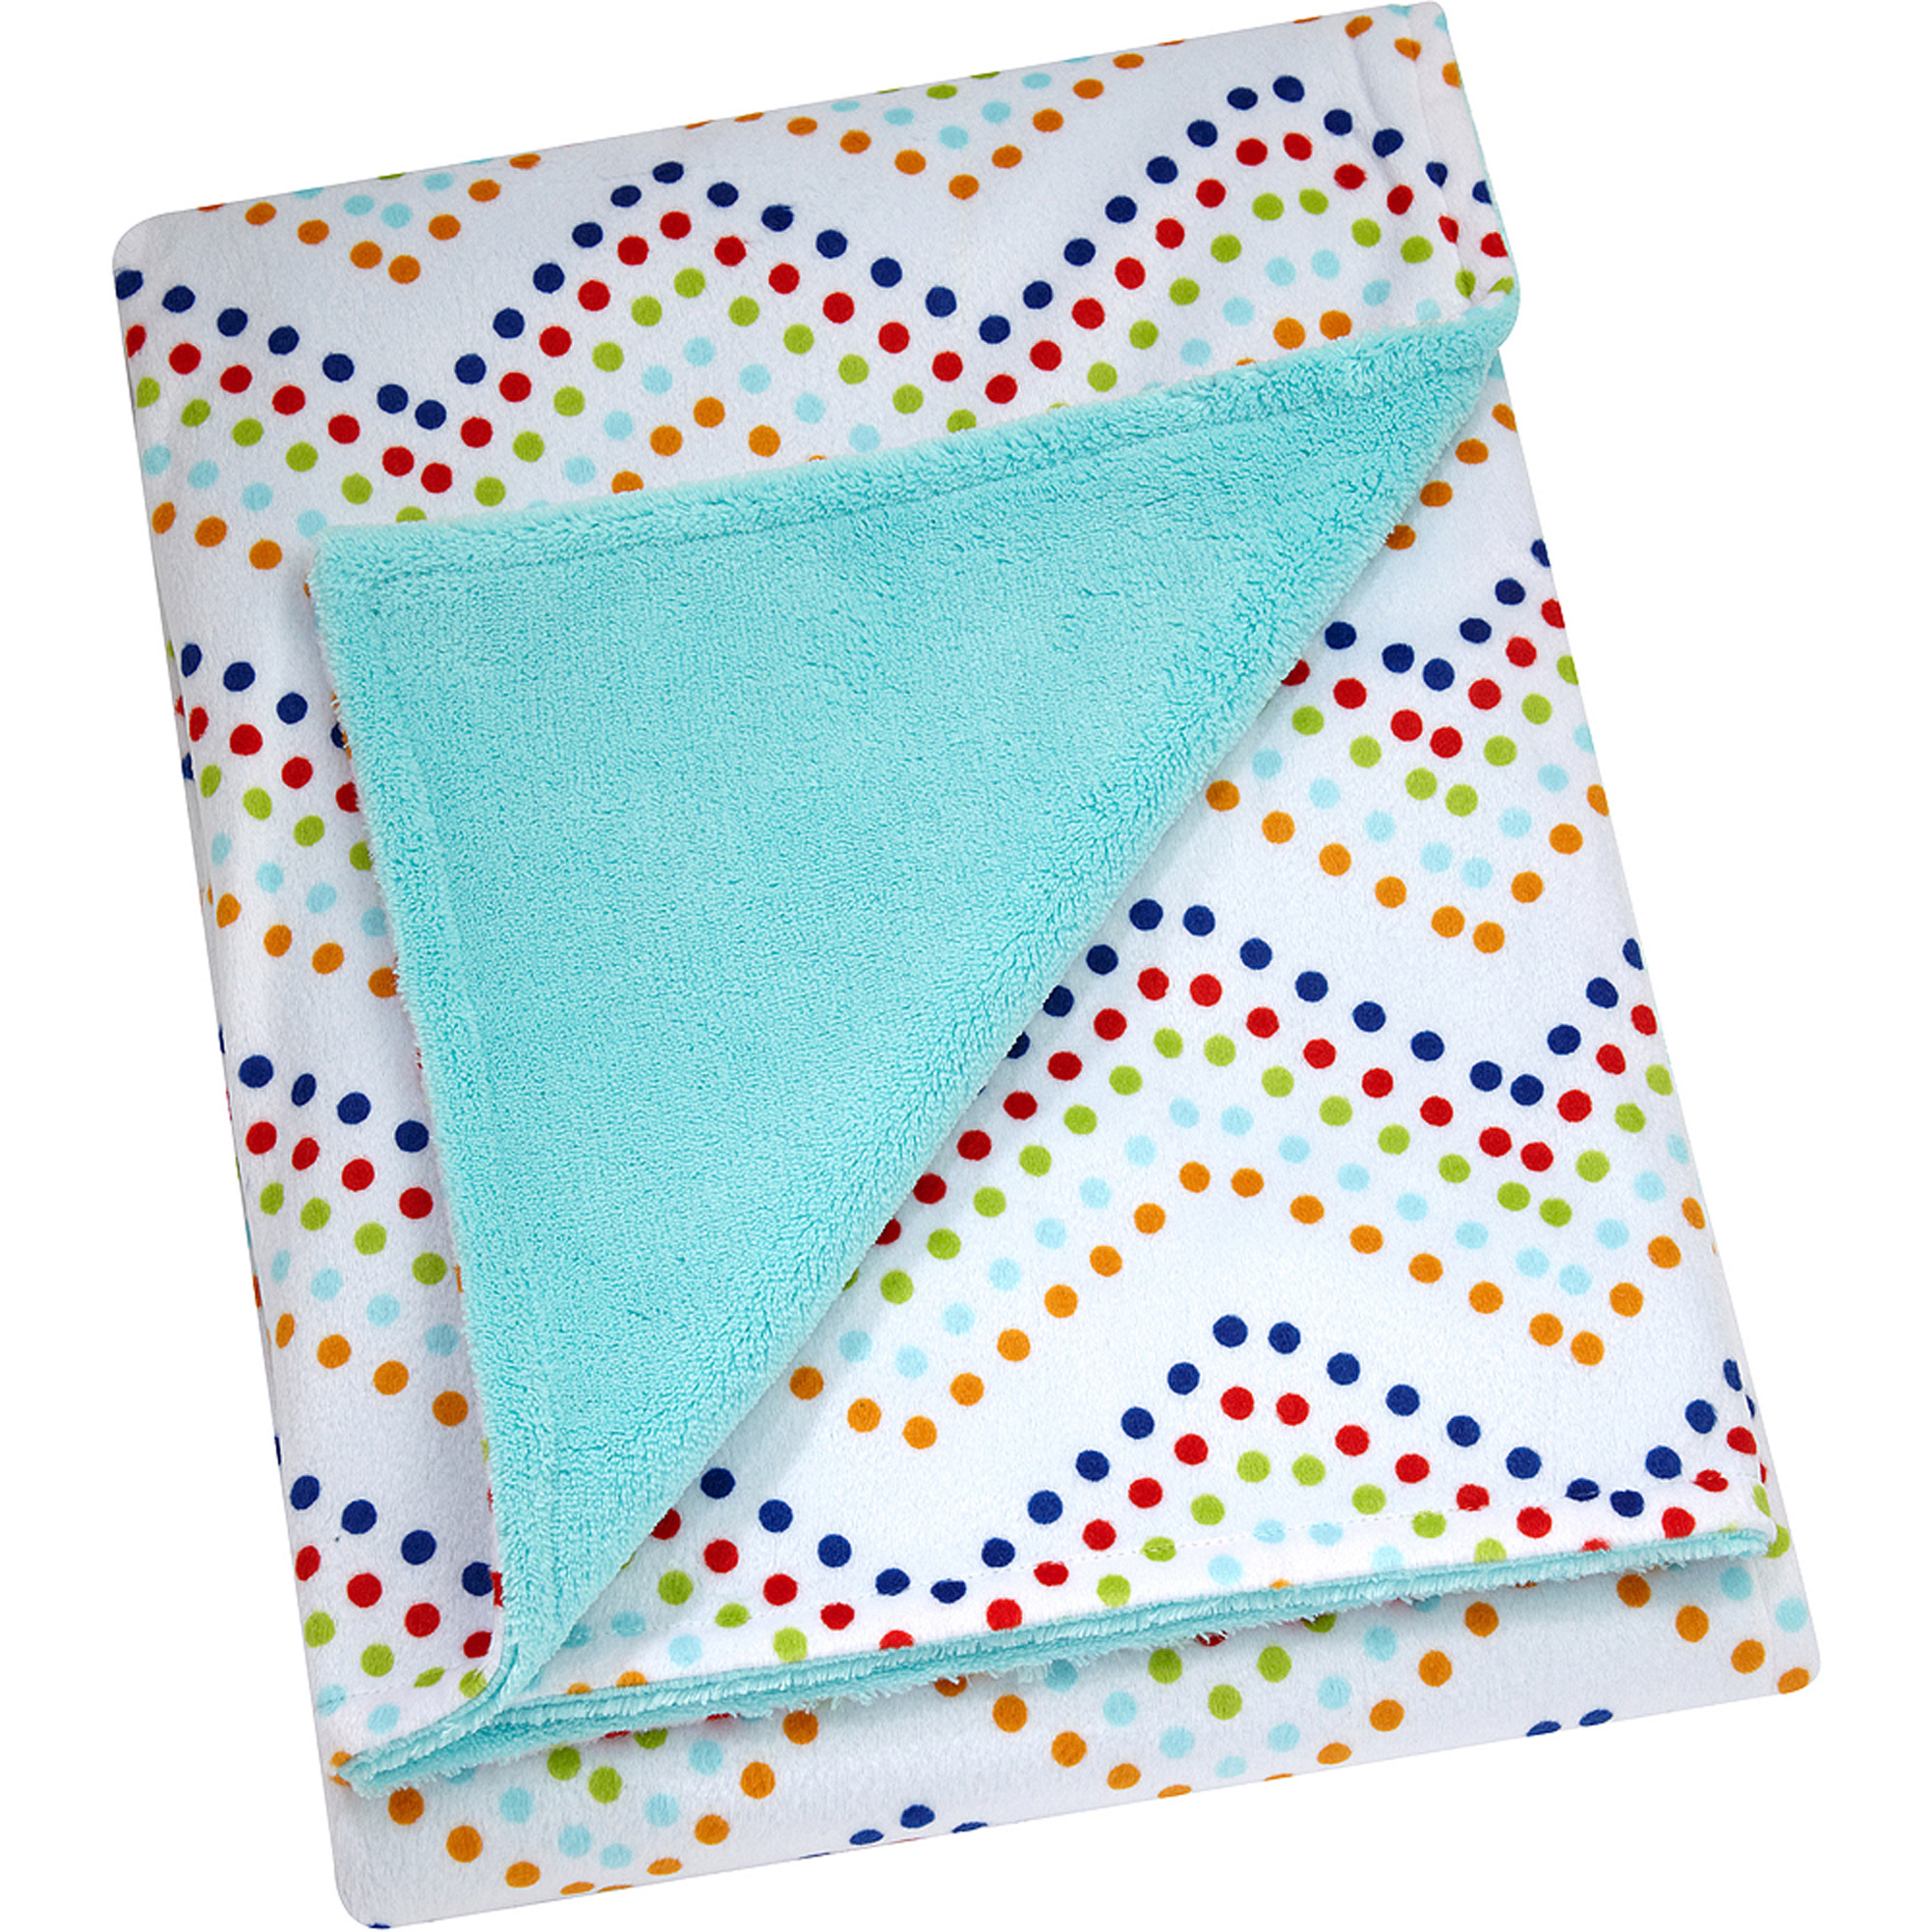 Little Bedding by Nojo Printed Velboa Blanket, Chevron Dot, Unisex